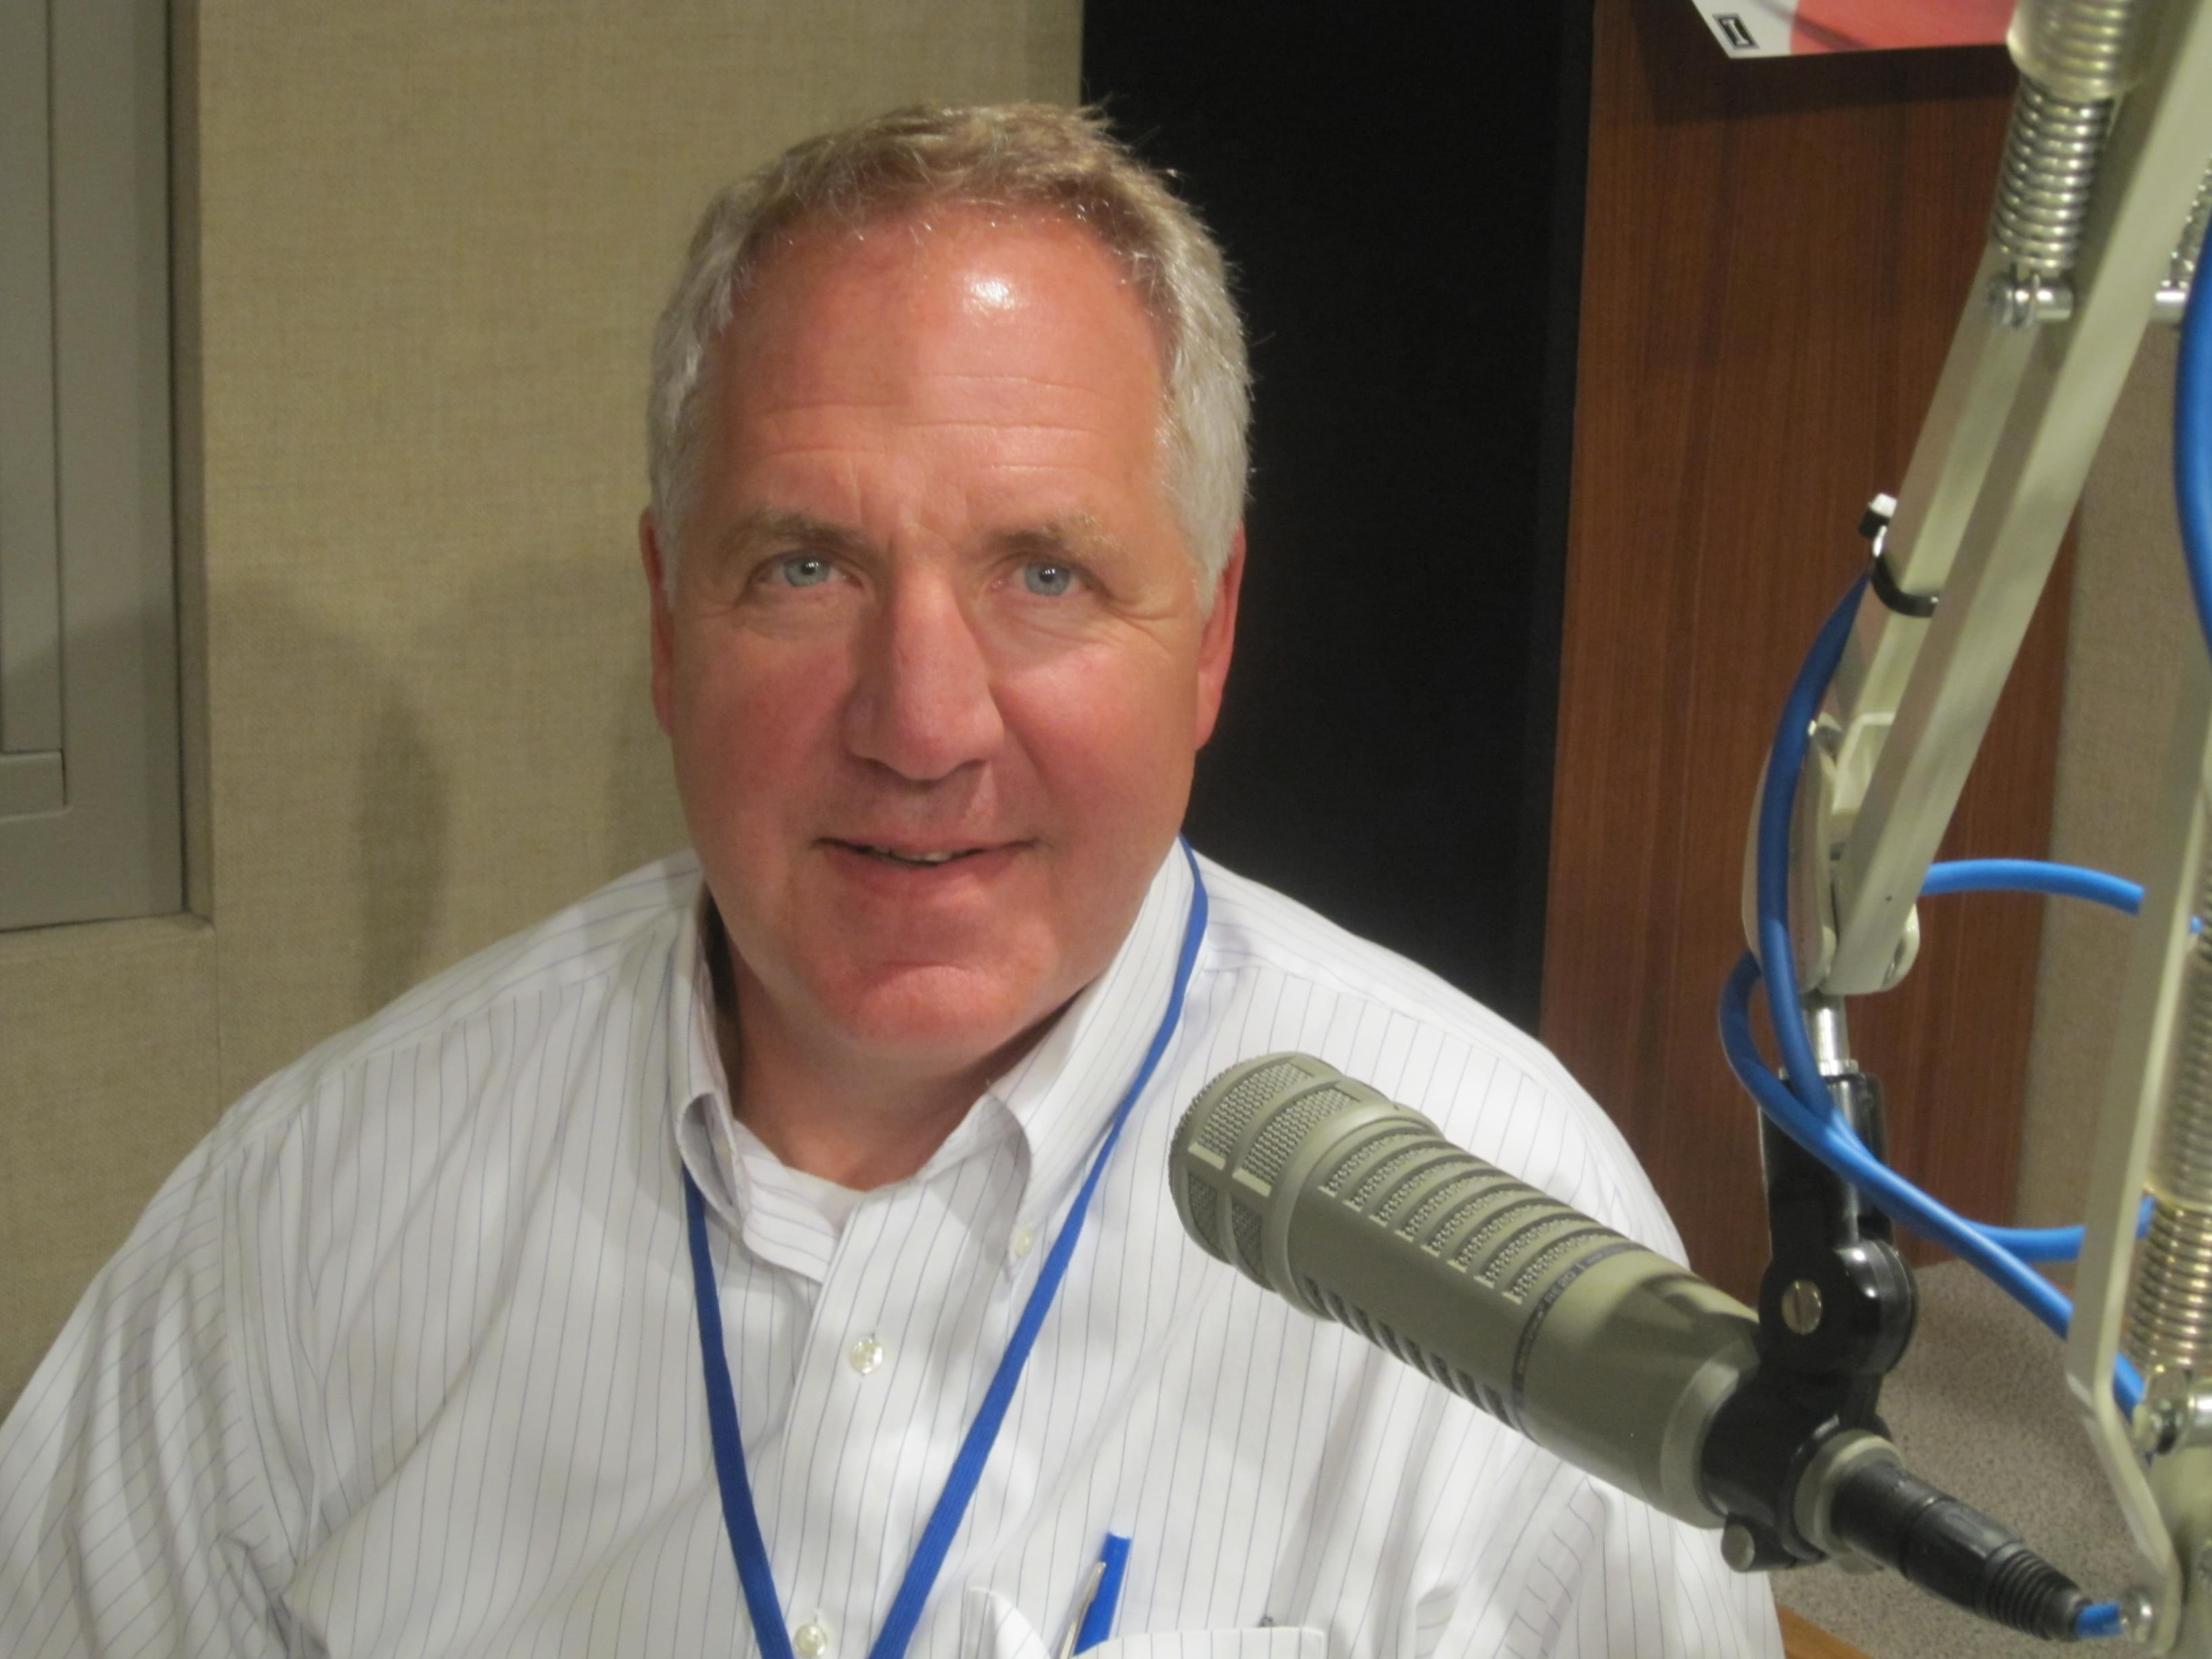 John Shimkus, during an interview with WILL in 2013.